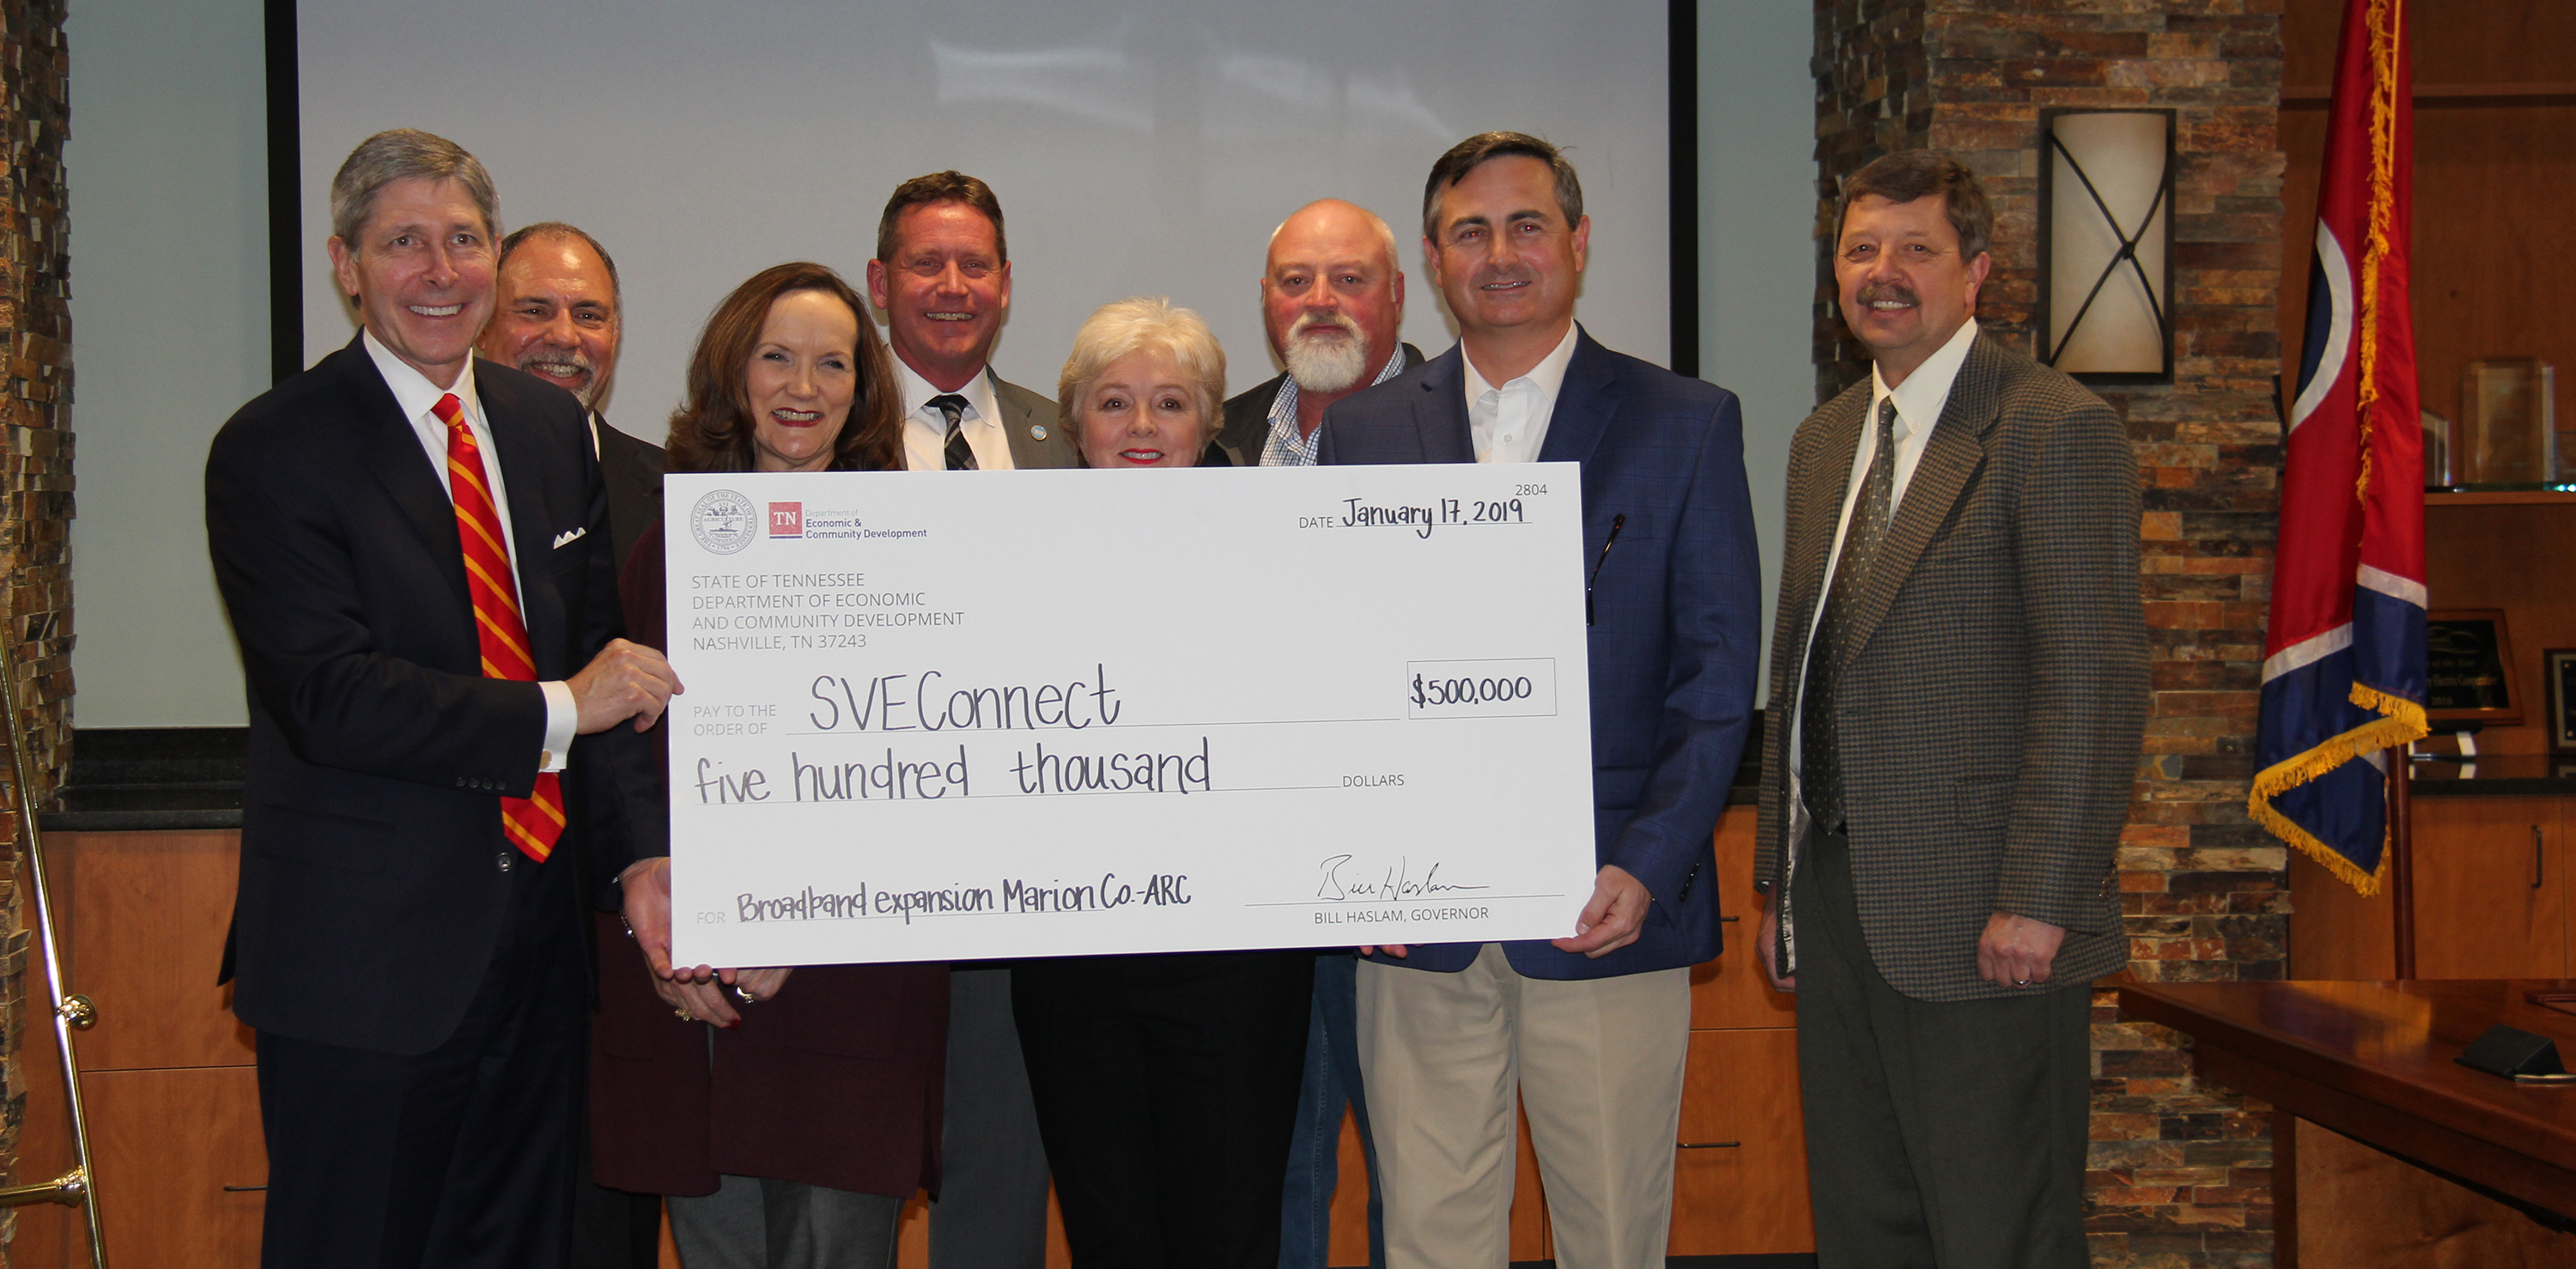 New Hope awarded $500,000 ARC grant